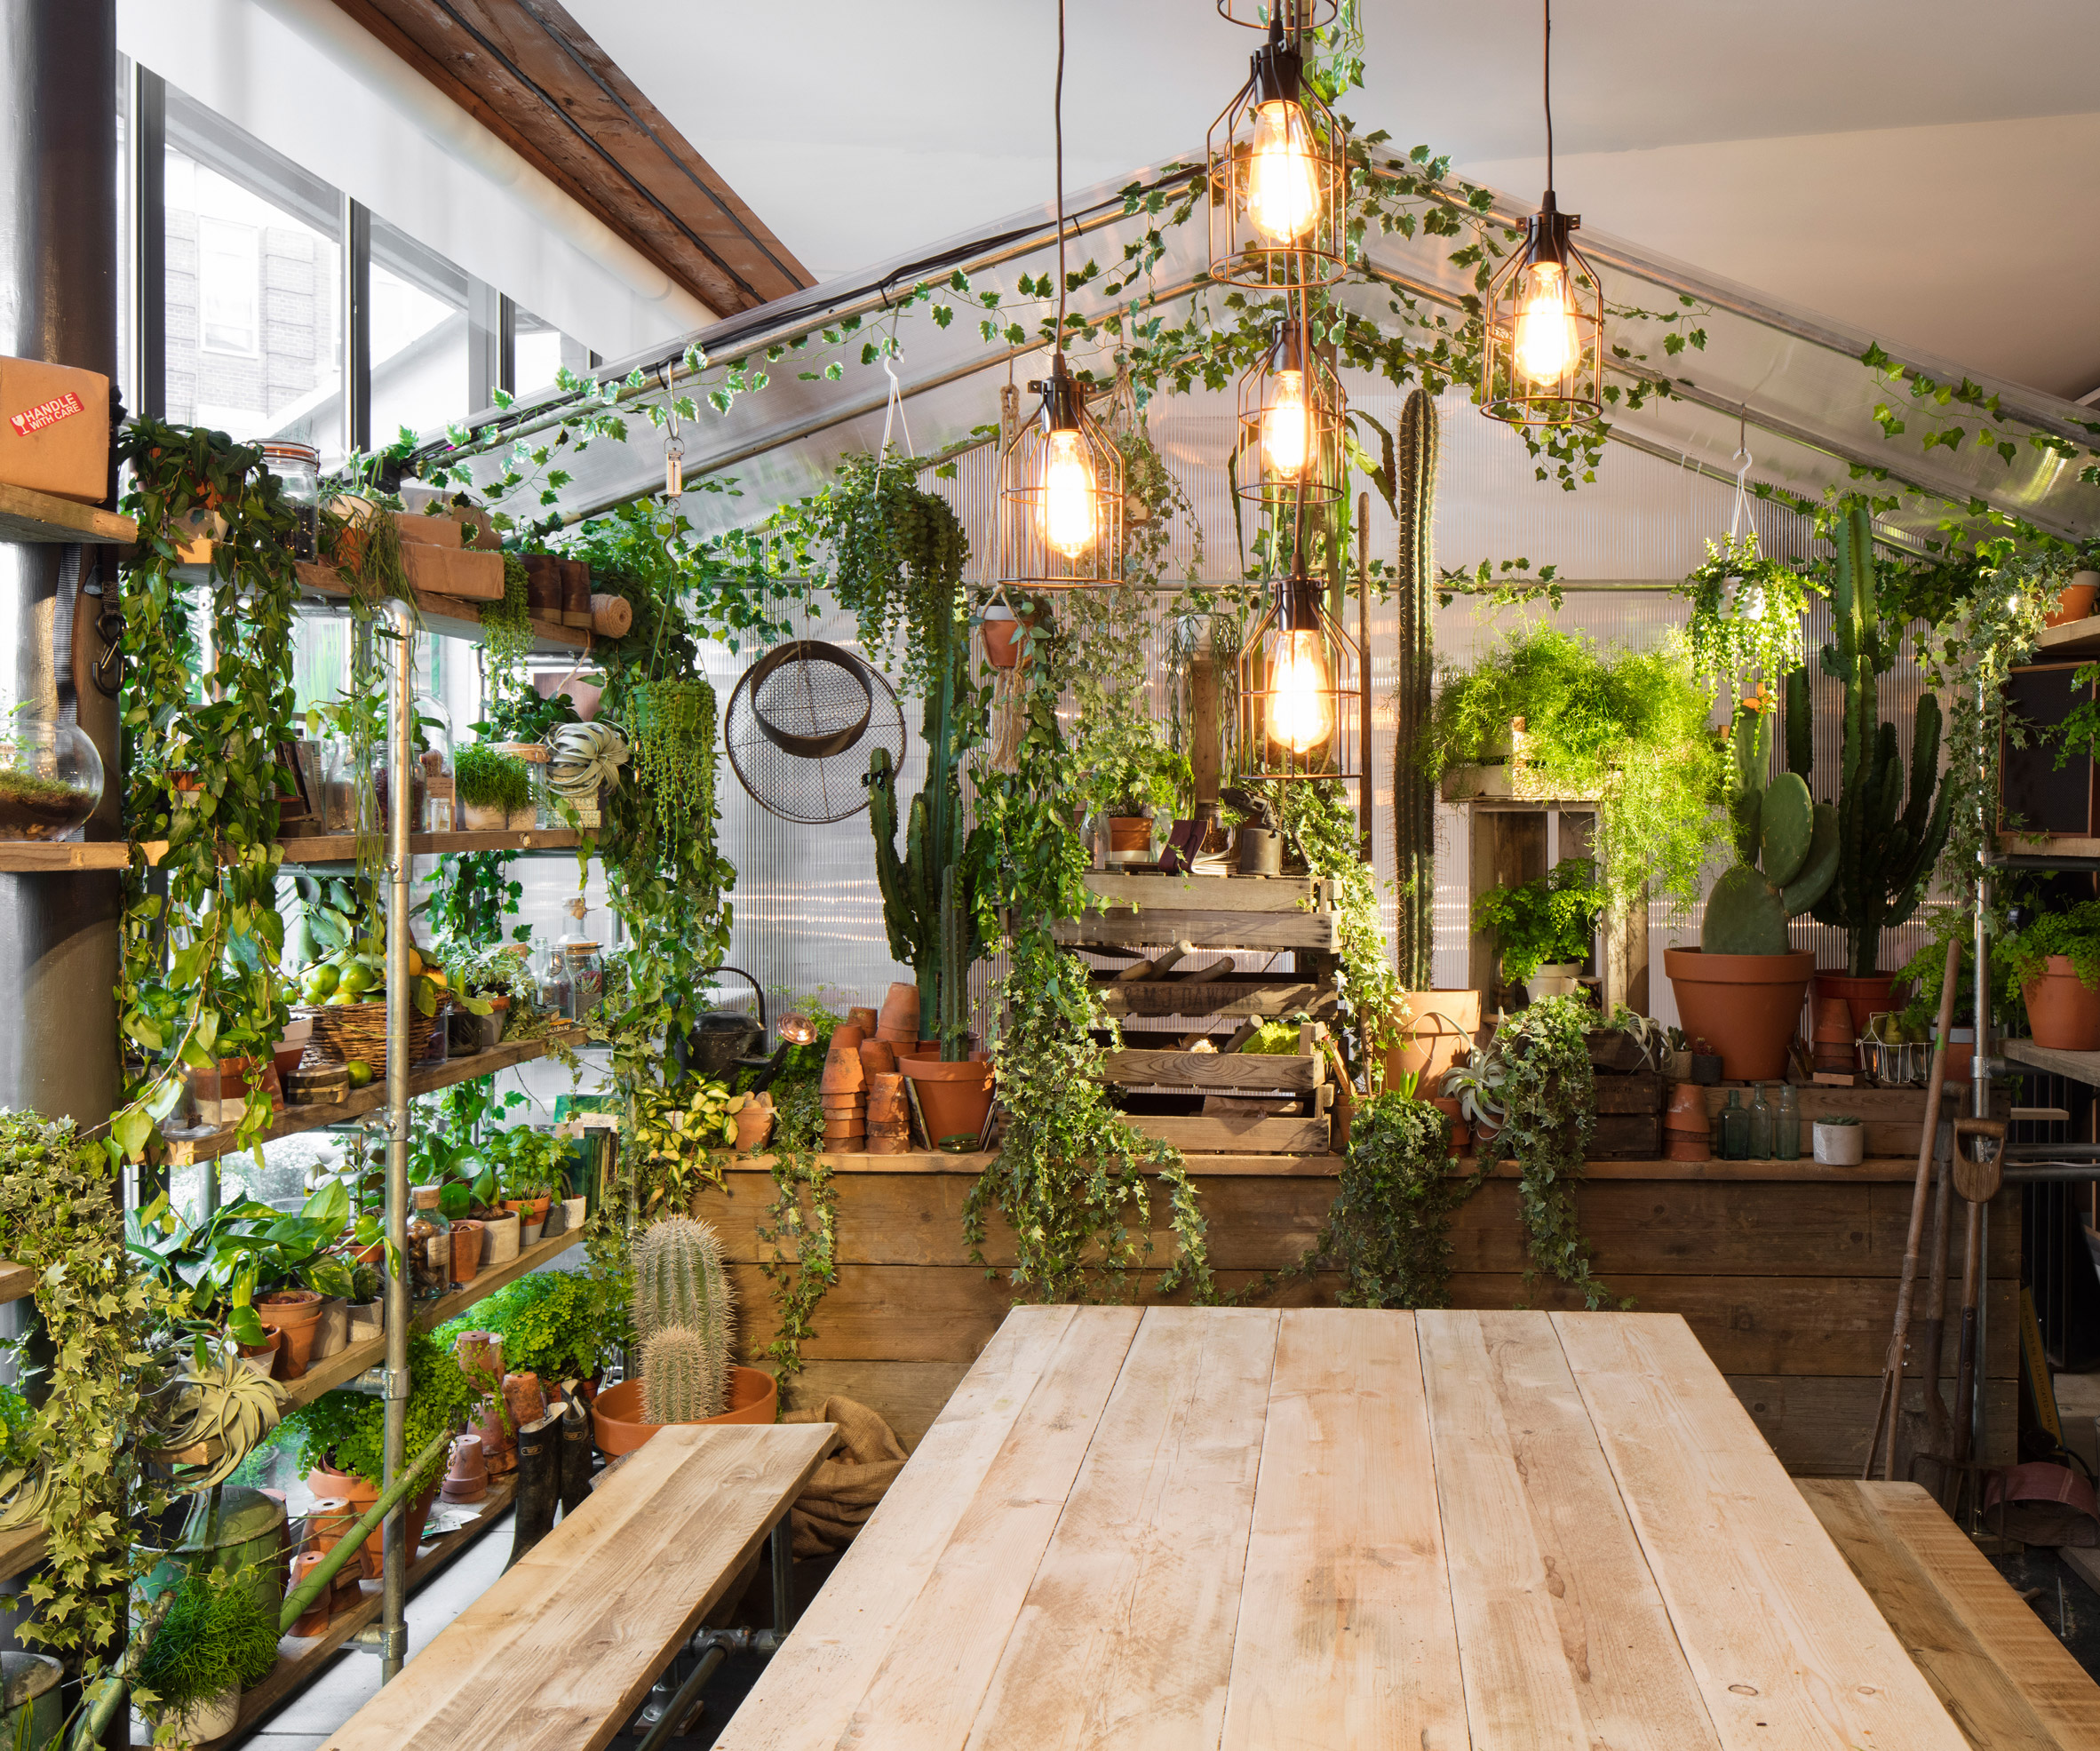 Pantone creates Greenery-themed home that can be booked on Airbnb